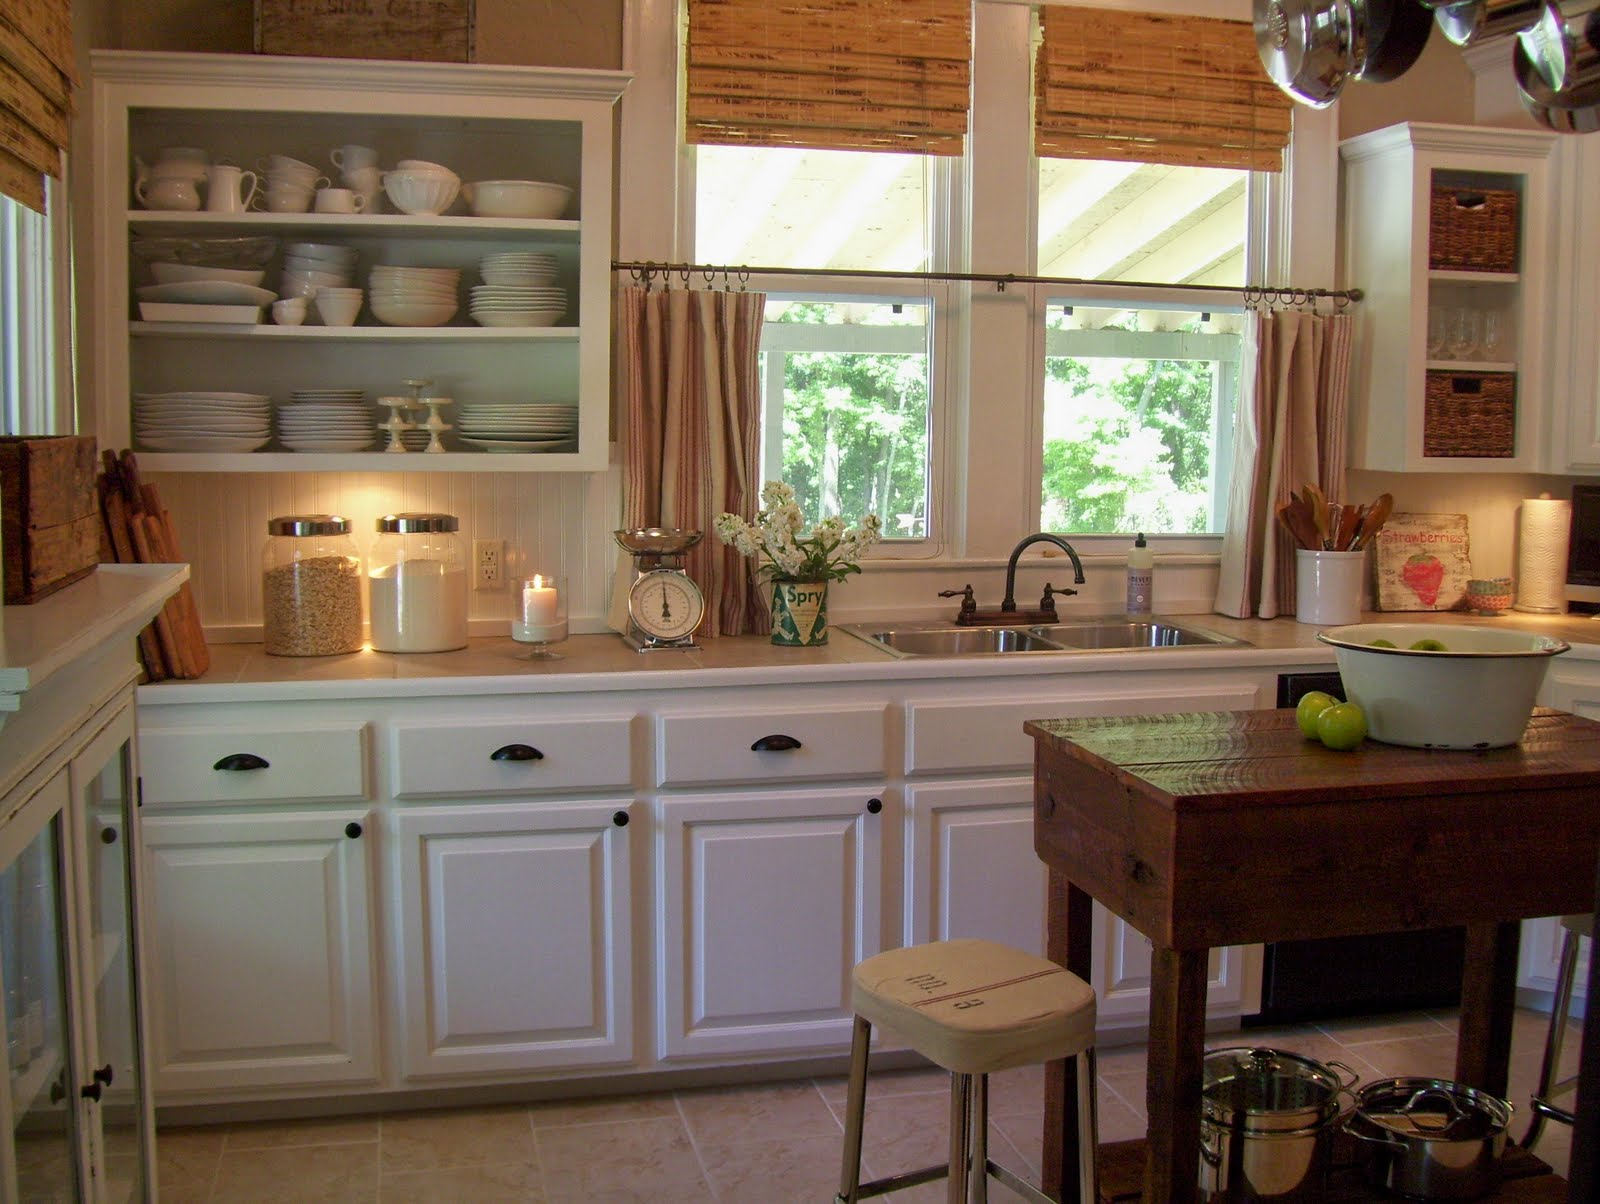 kitchen cabinets makeover ideas photo - 3